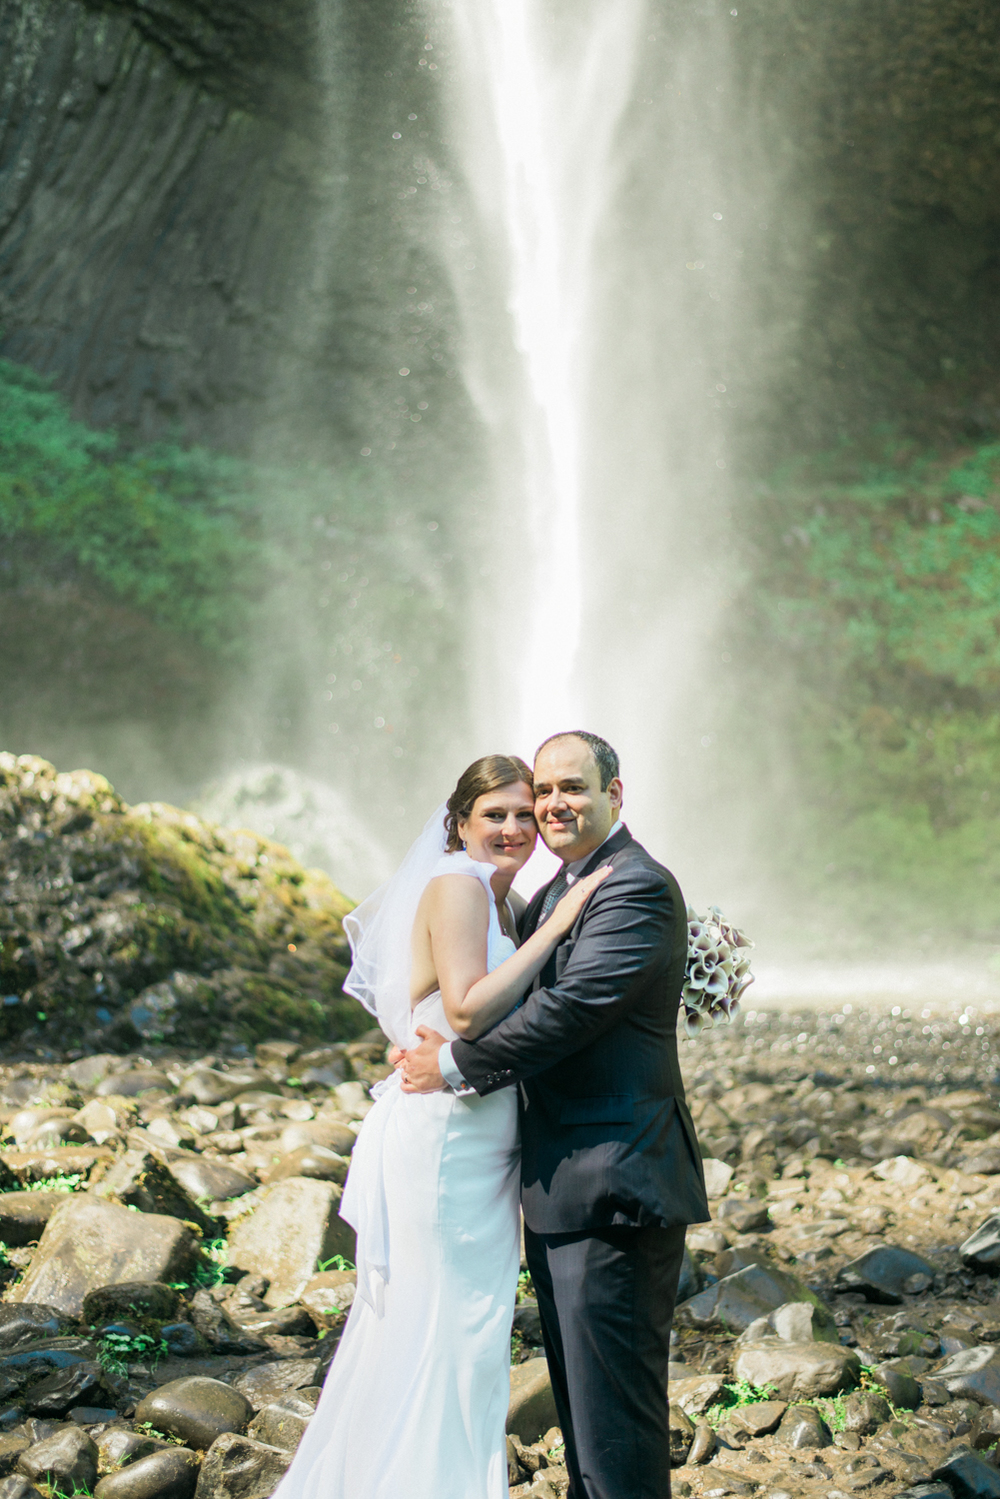 latourell-falls-waterfall-wedding-columbia-river-gorge-portland-oregon-shelley-marie-photo-1